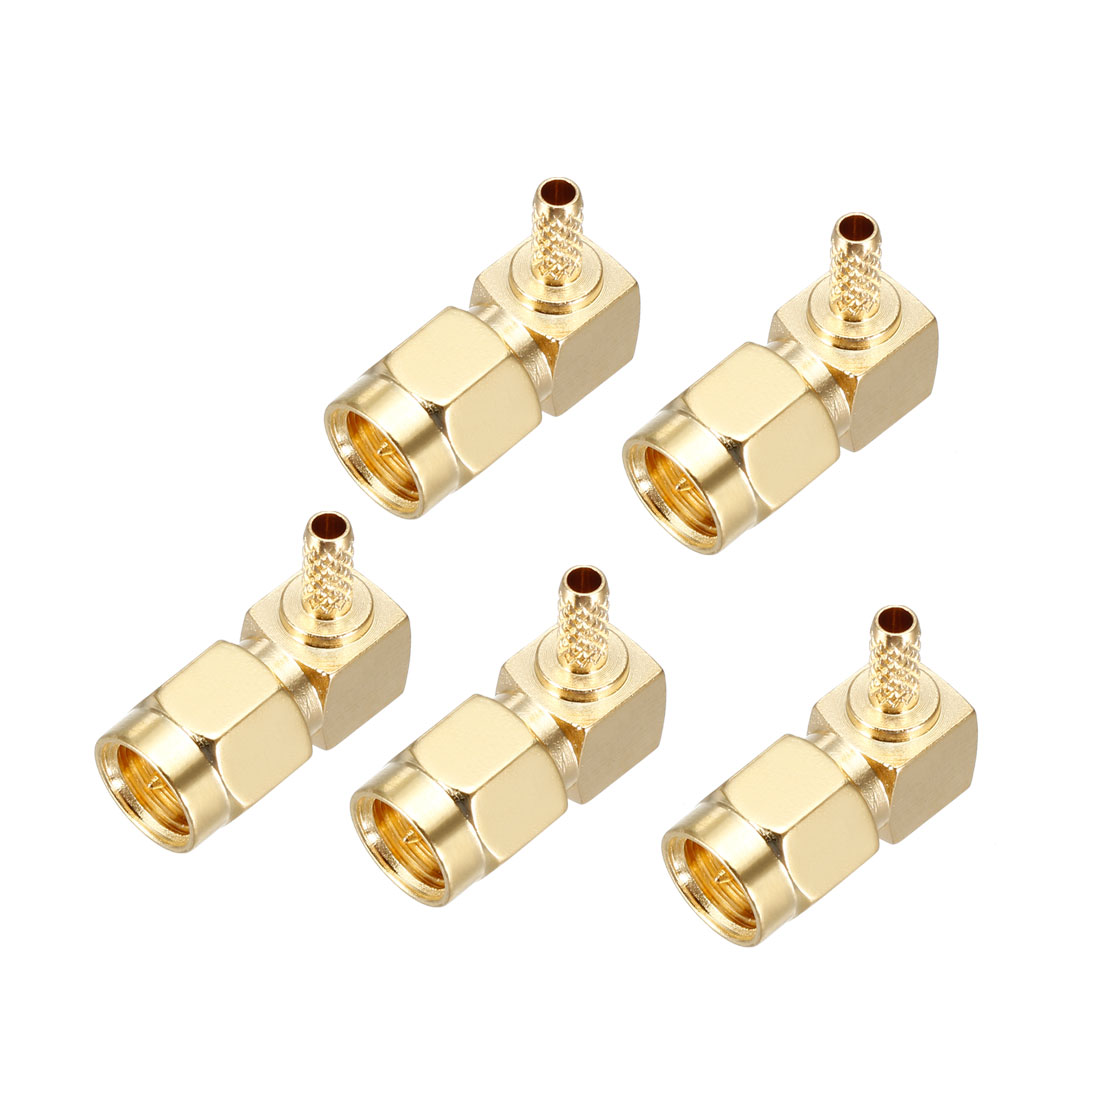 5x SMA Male Connector Right Angle Crimp RG174 RG316 RF Connector